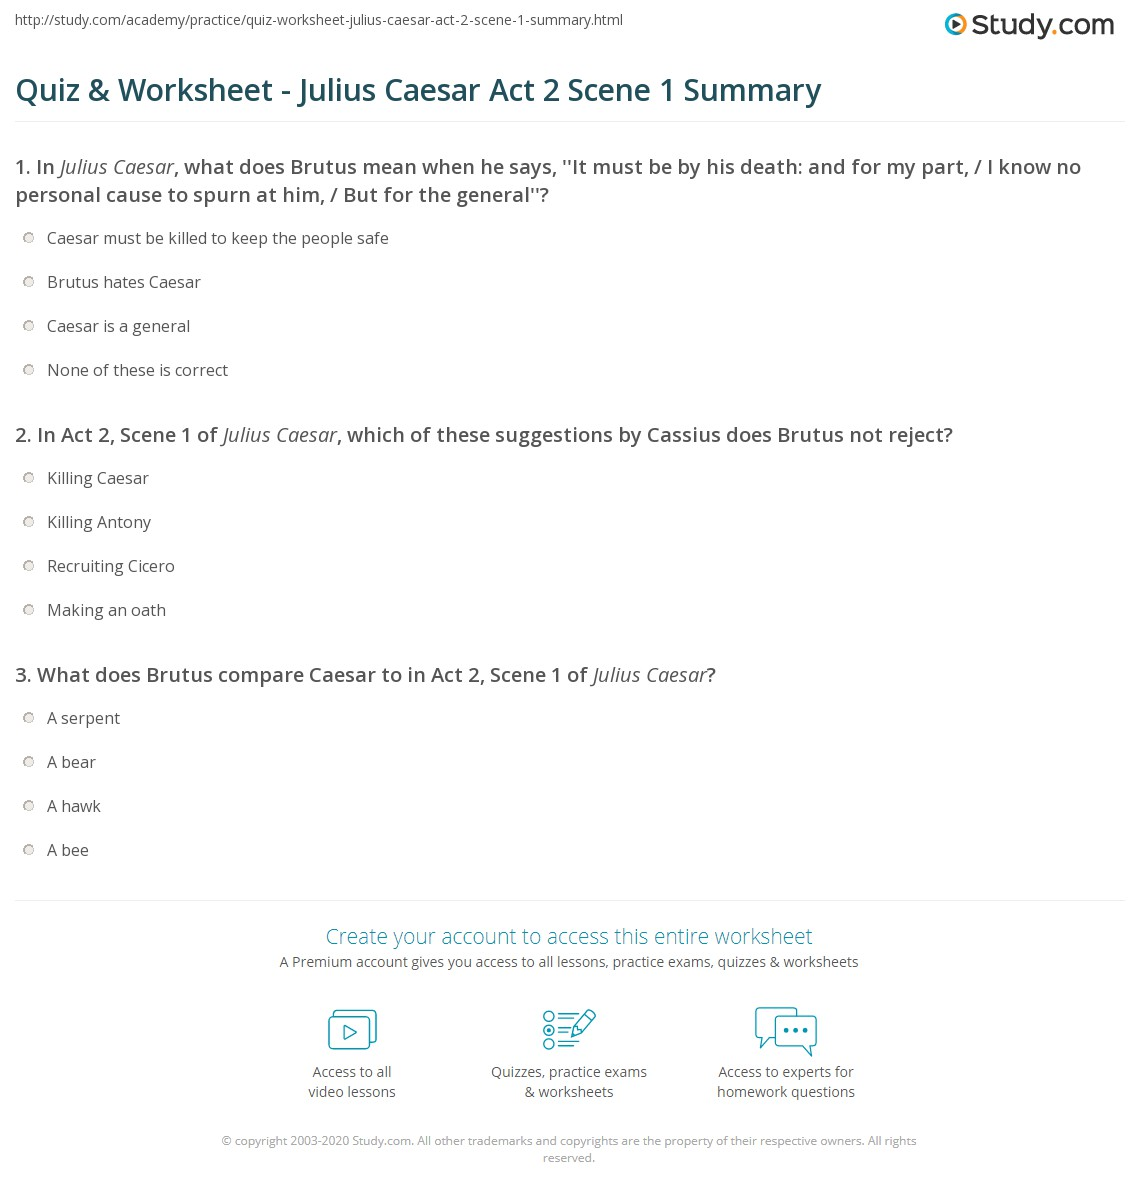 Quiz Worksheet Julius Caesar Act 2 Scene 1 Summary